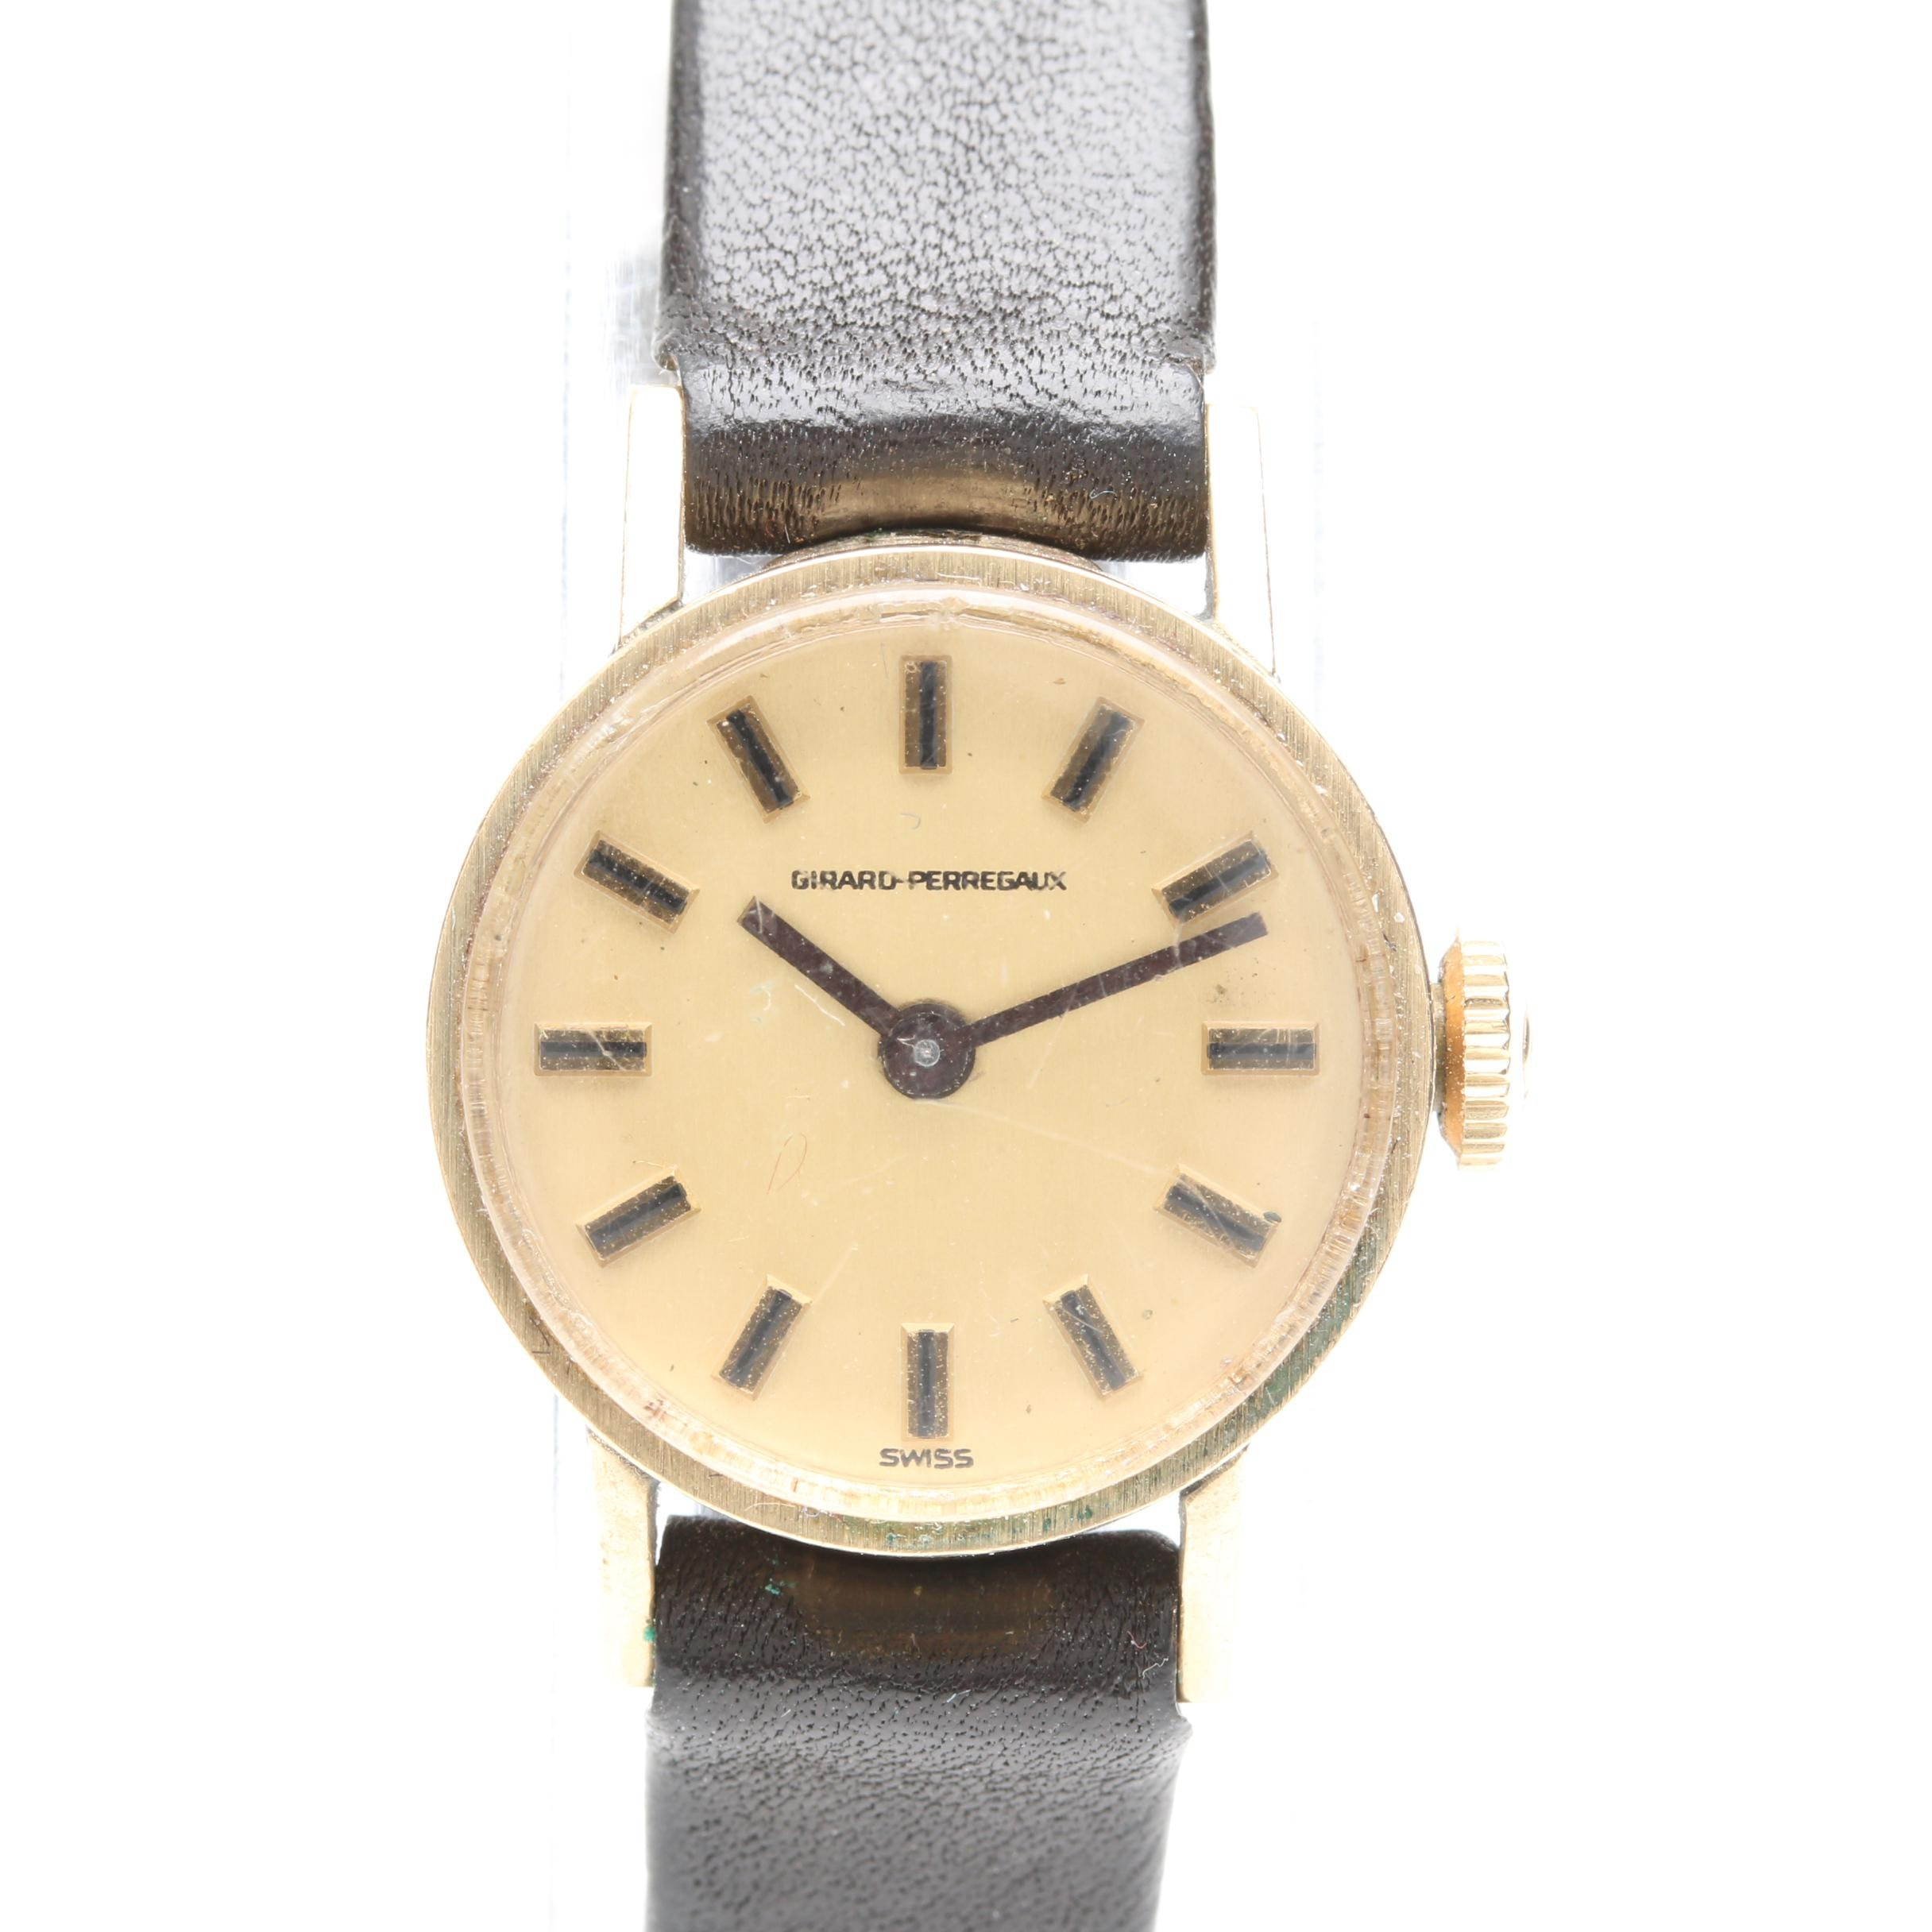 Girard-Perregaux 10K Gold Filled Wristwatch With Leather Strap